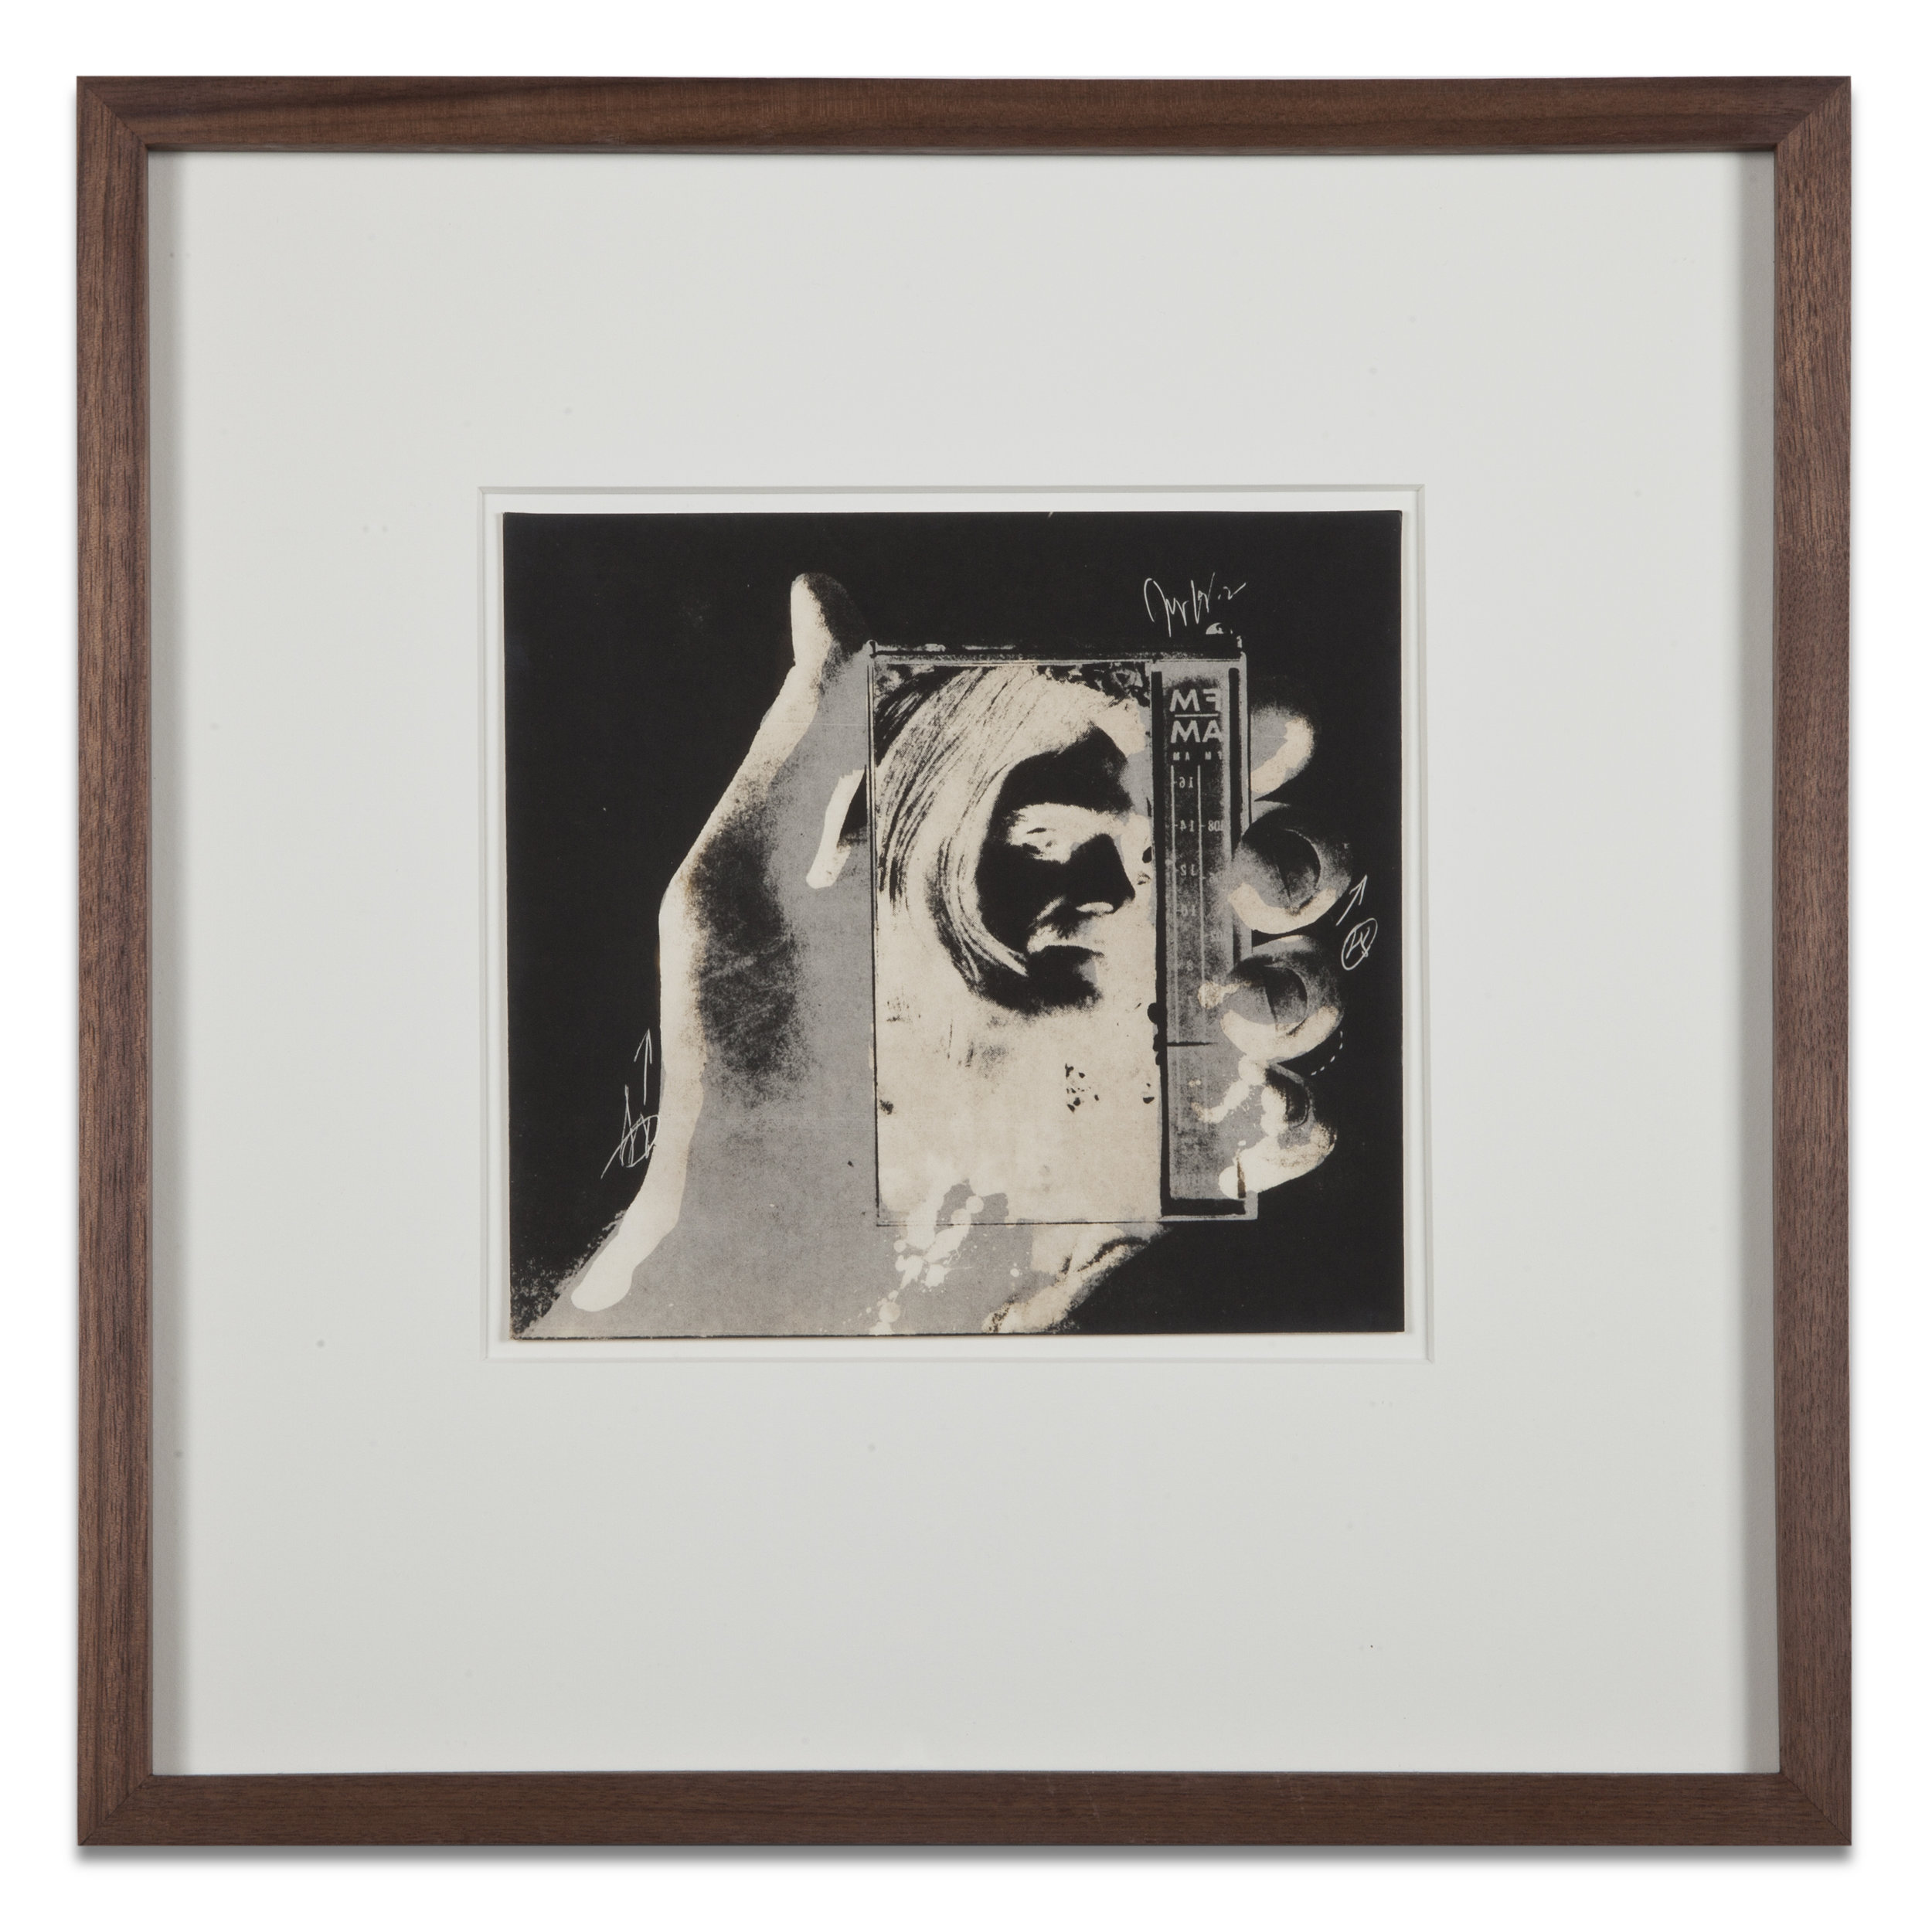 "Copy of ""Untitled #64"" , c. 1964-76, Verifax collage, 6 x 6 1/2 inches, framed 12 x 12 1/2 inches"